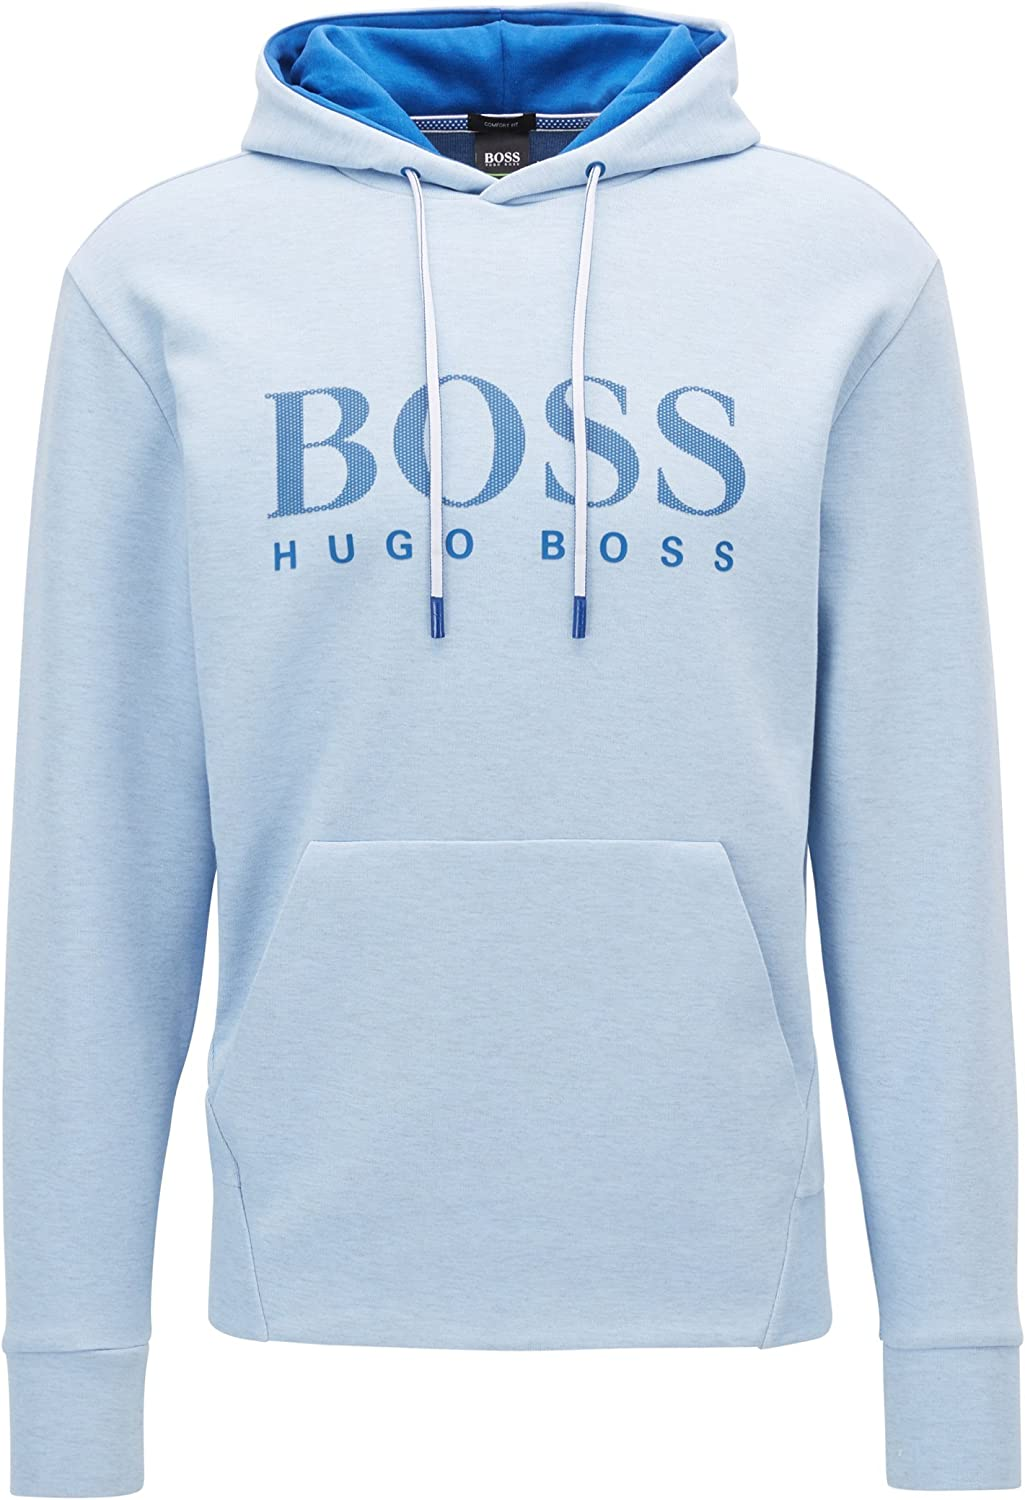 Hugo Boss Heritage Cotton Regular Fit Hooded Navy Tracksuit